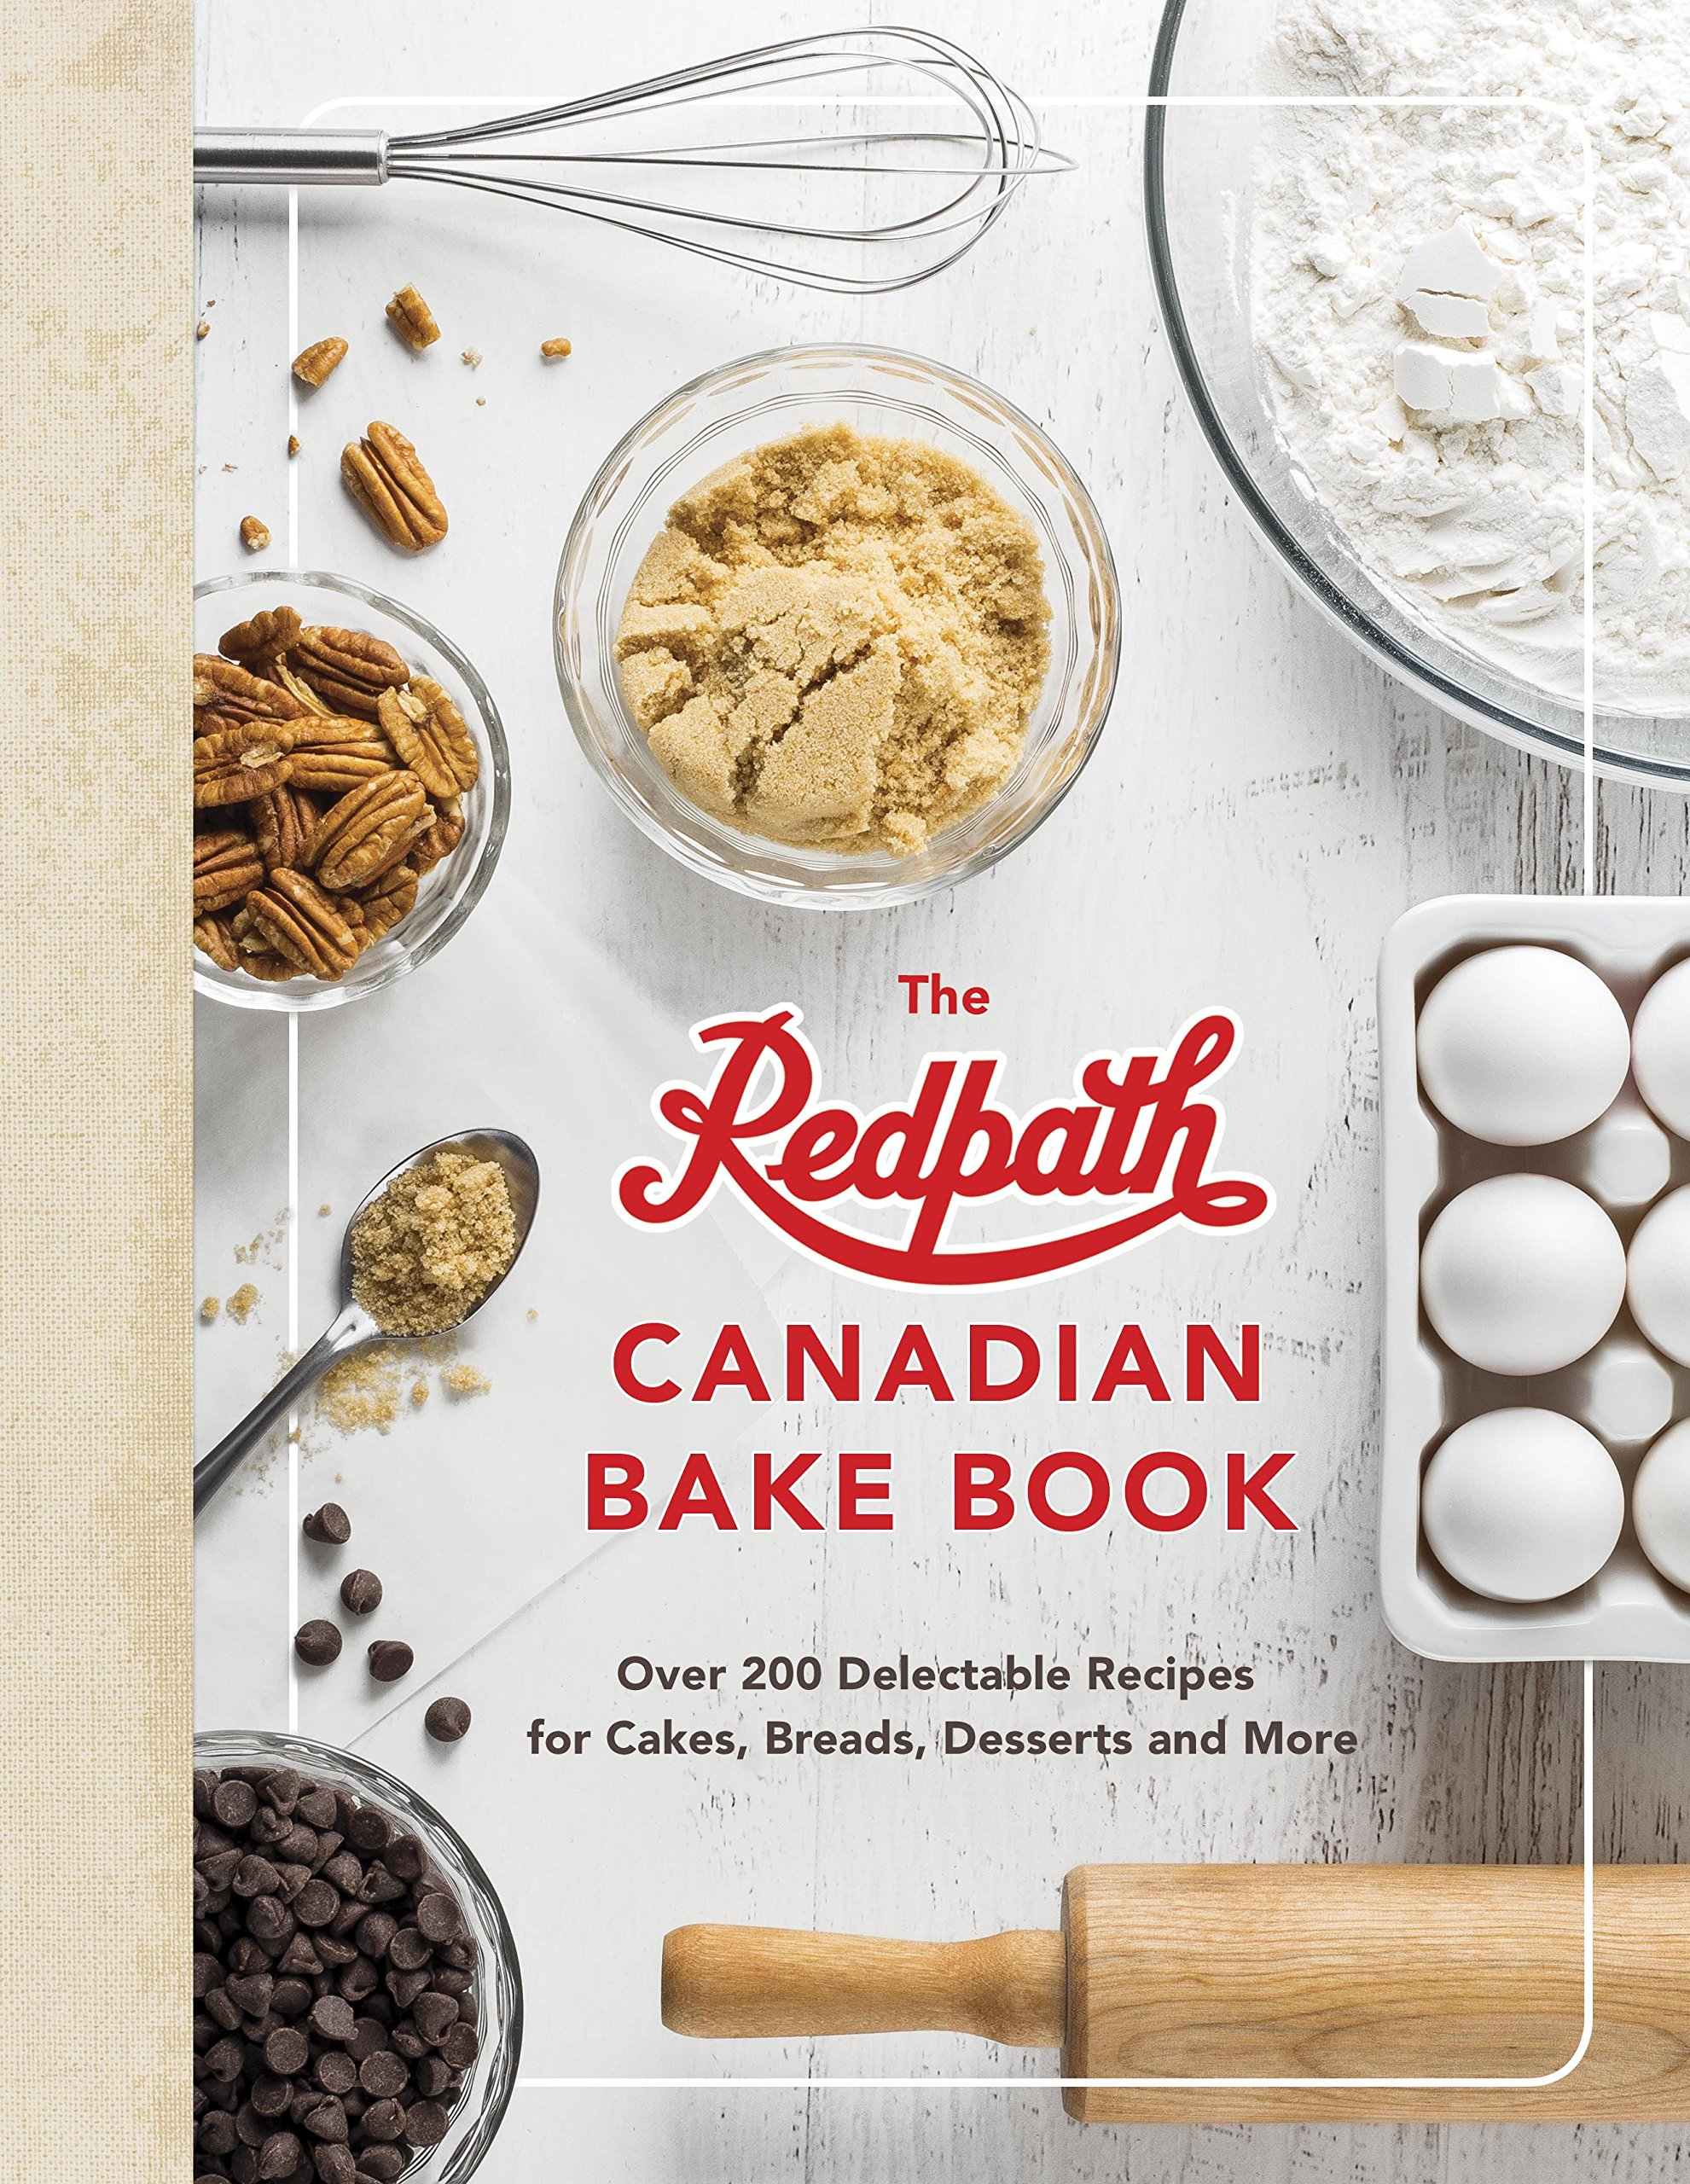 The all new purity cook book a complete guide of canadian cooking the redpath canadian bake book over 200 delectable recipes for cakes breads desserts forumfinder Image collections